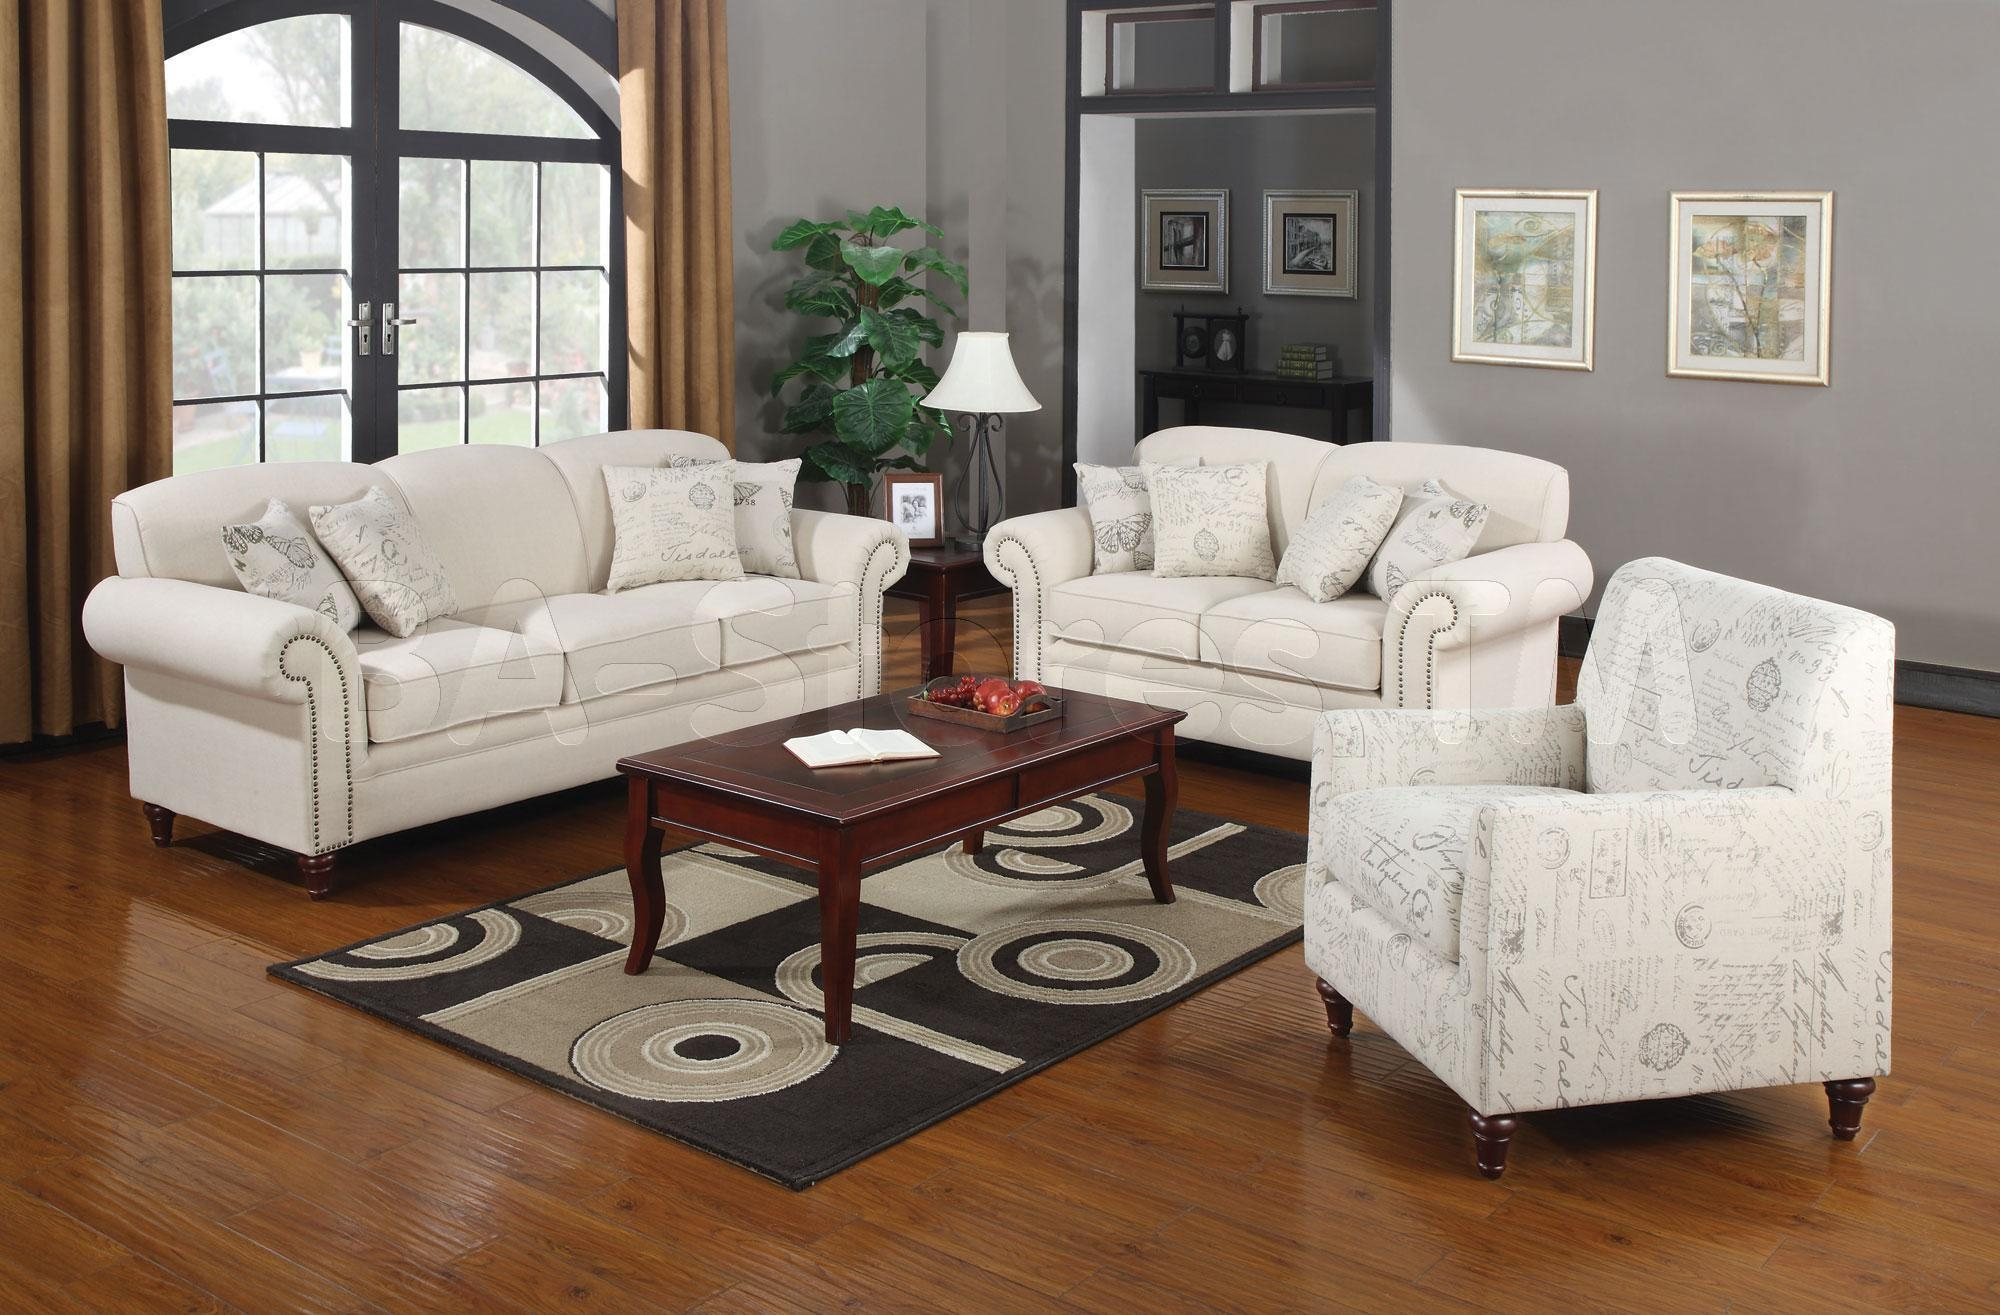 Furniture: Good Living Room Sets Near Me Black Living Room Sets Throughout Sofa Chairs For Living Room (View 17 of 20)